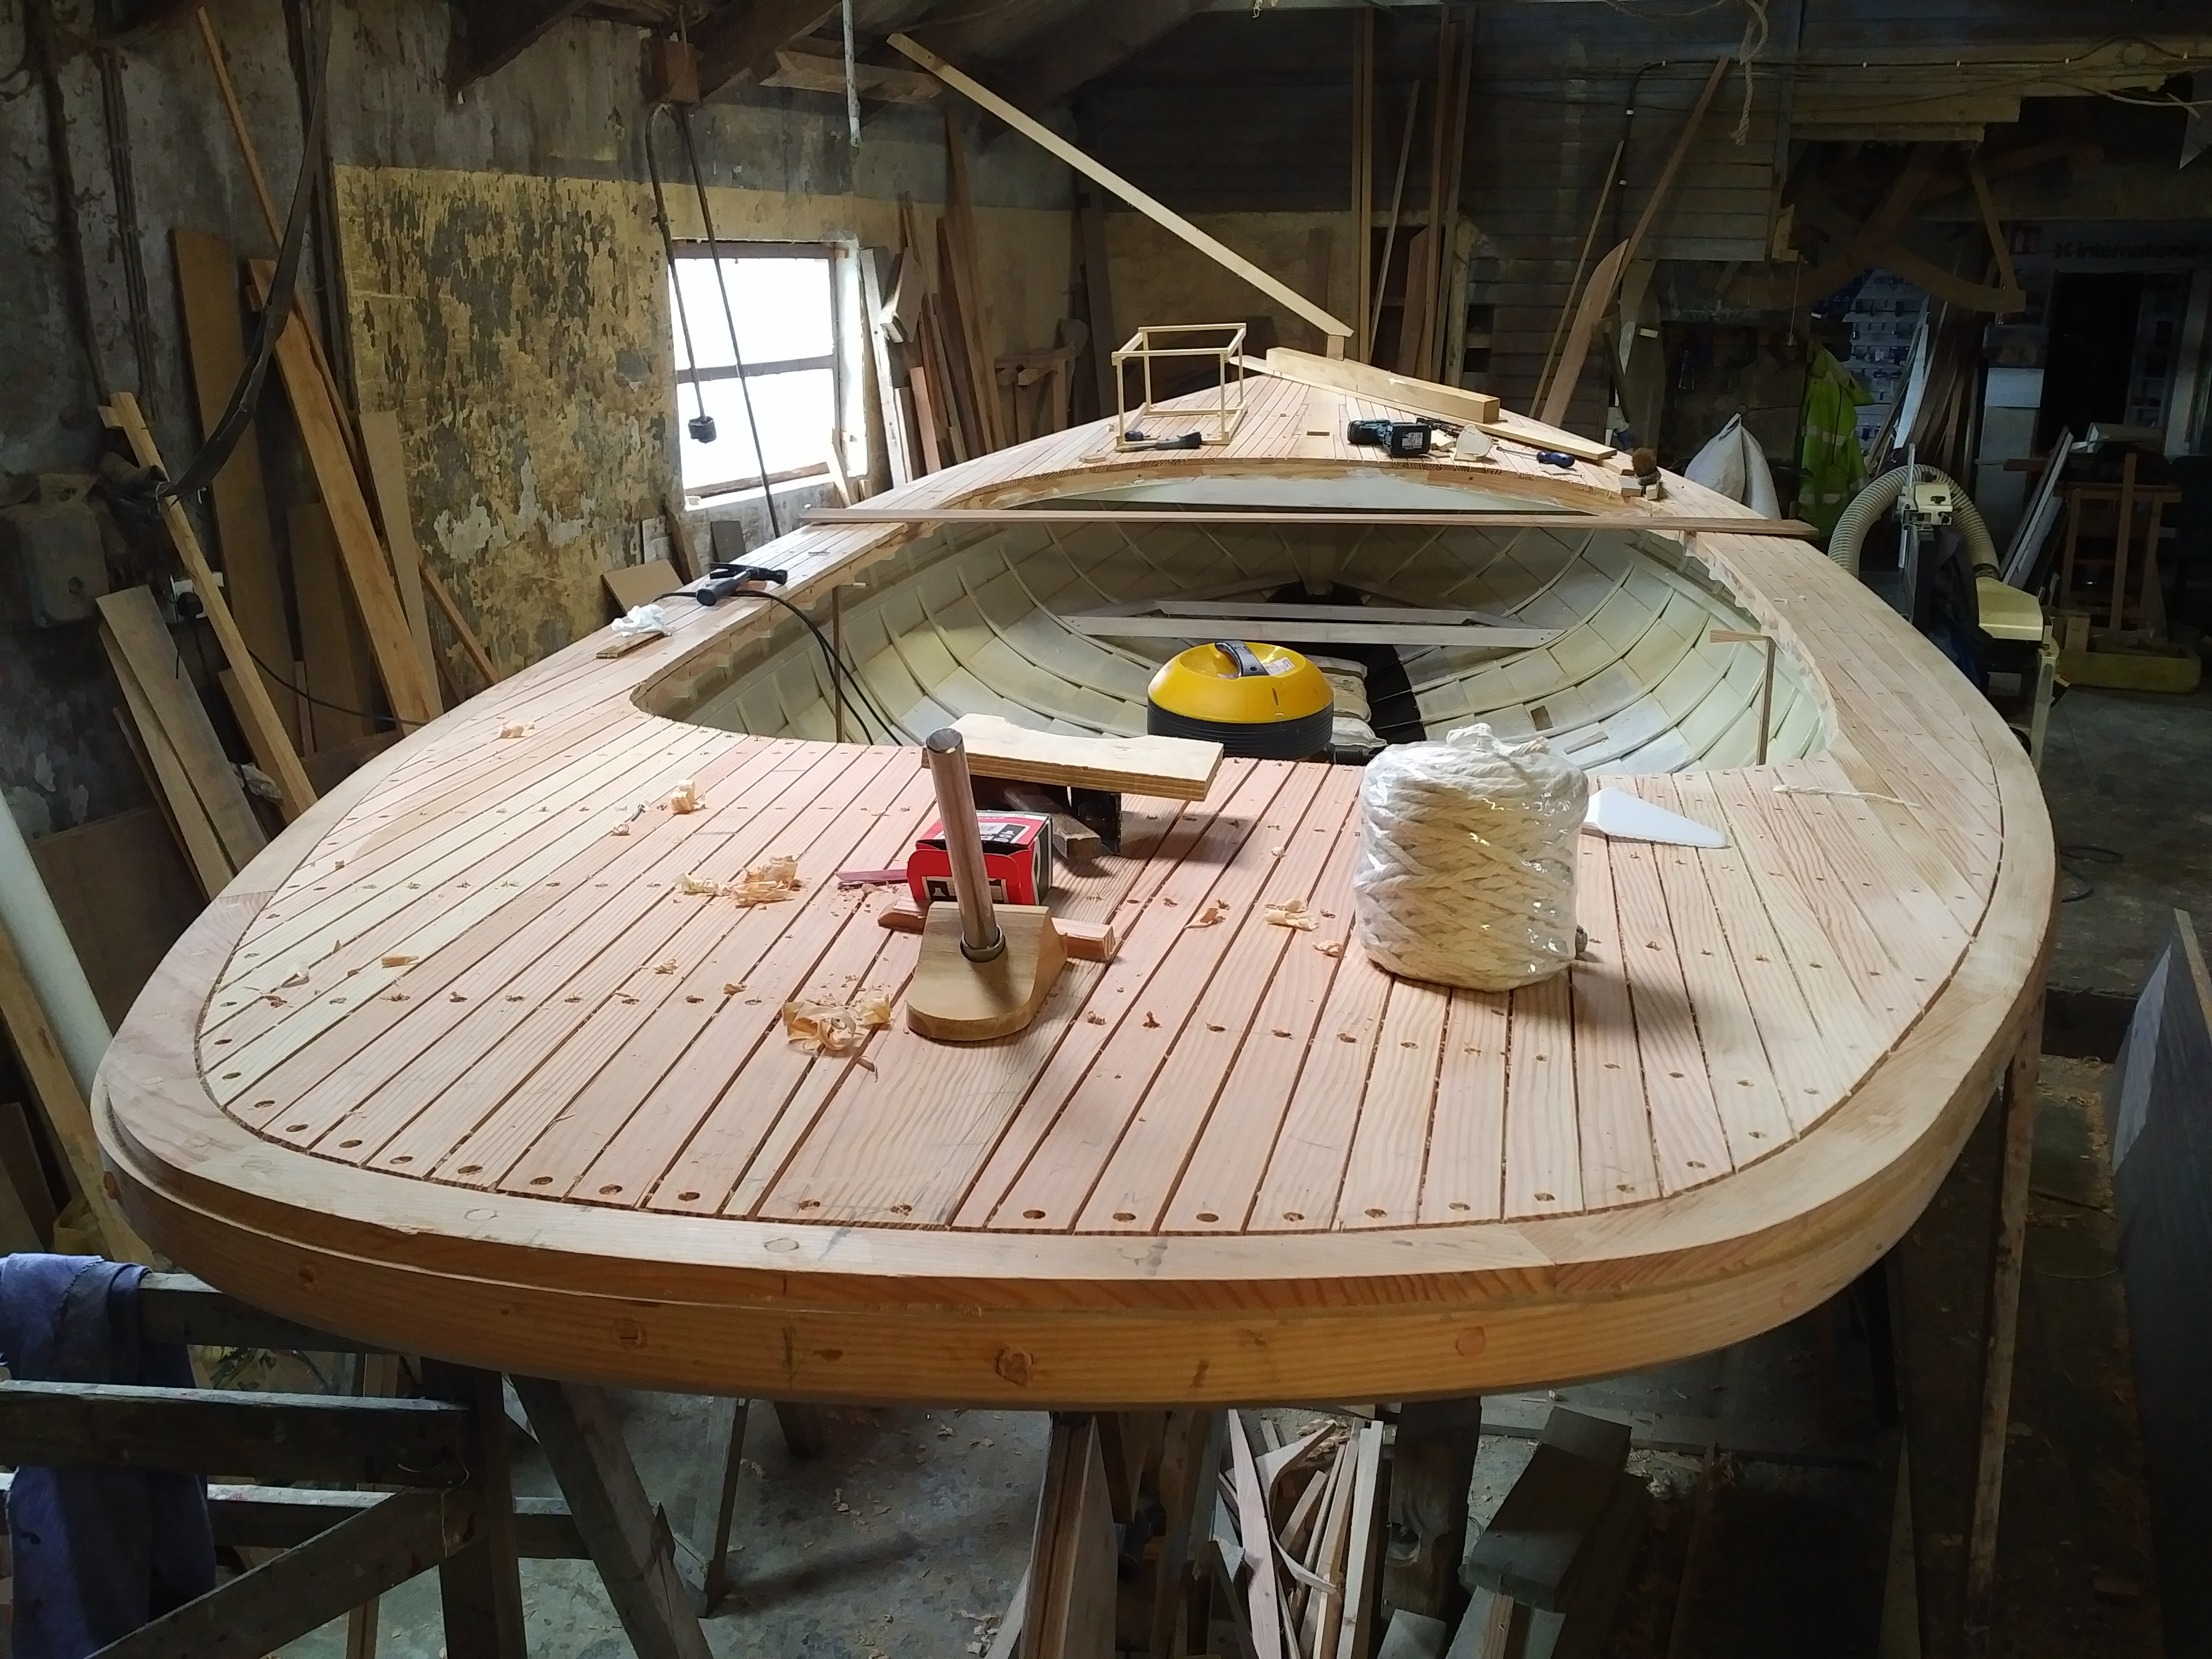 Another counter stern yole in build. This one is destined for the Suffolk rivers launching in 2019